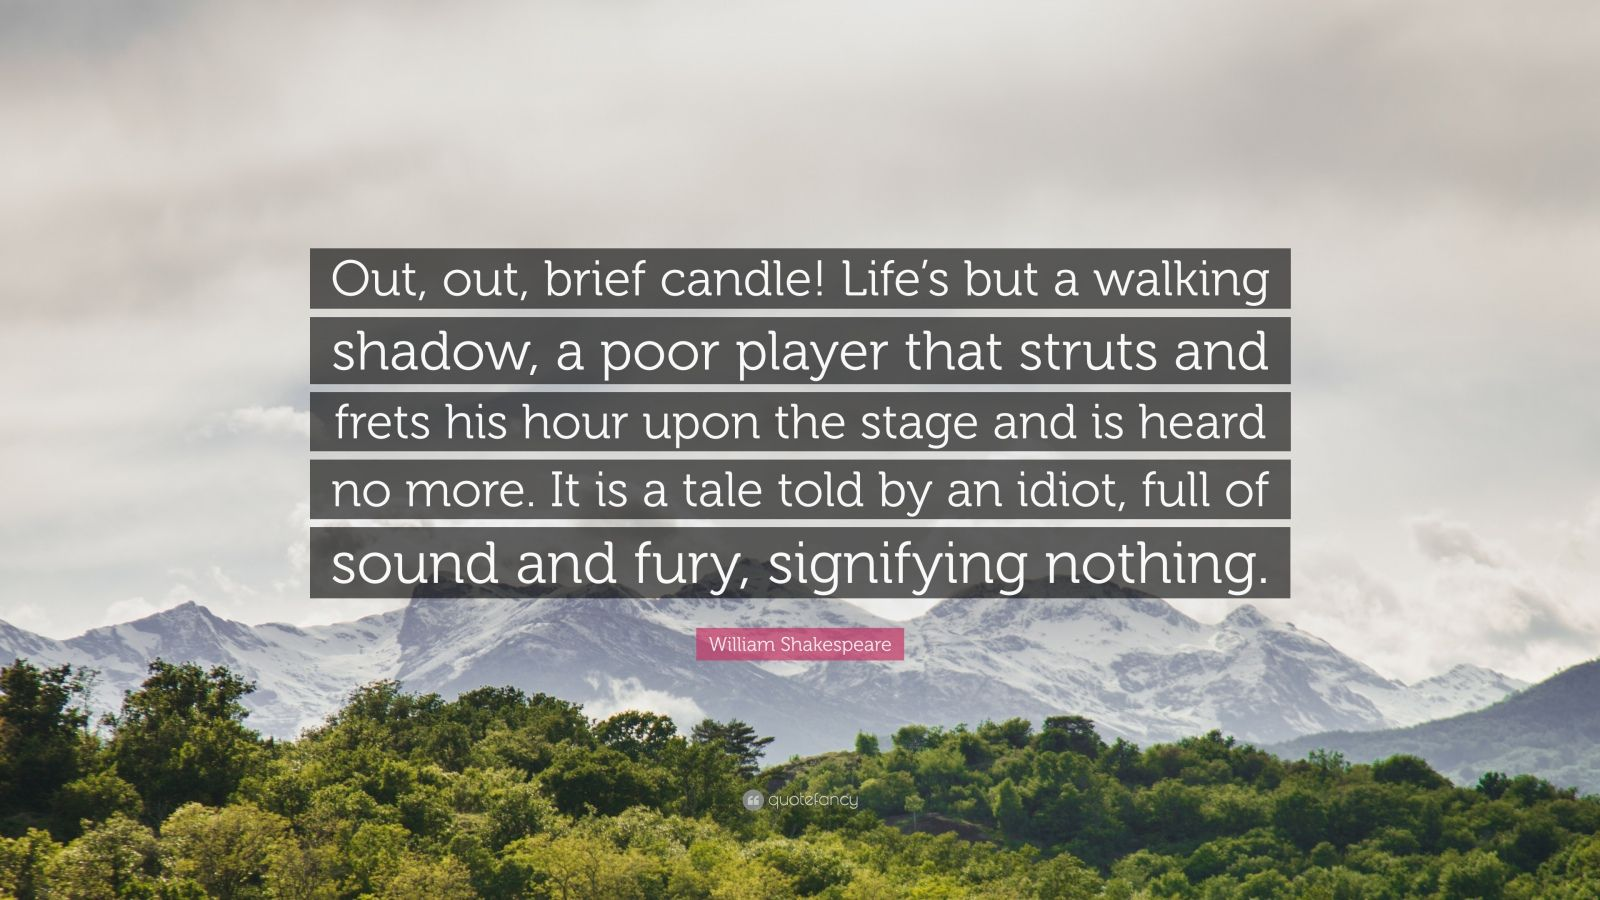 william shakespeare quotes quotefancy william shakespeare quote out out brief candle life s but a walking